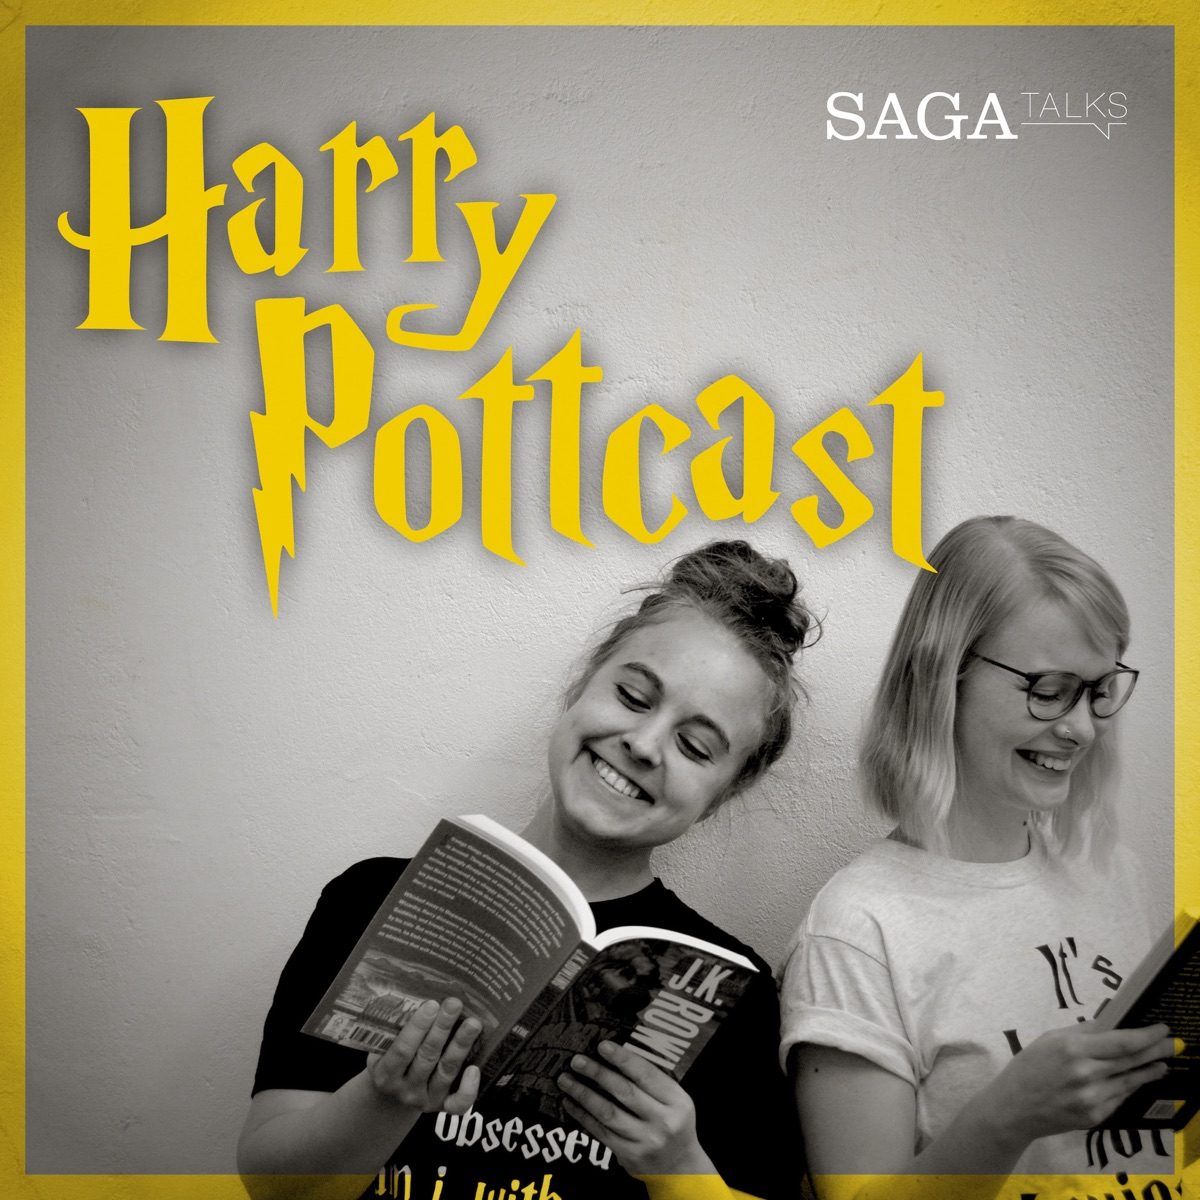 Harry Pottcast